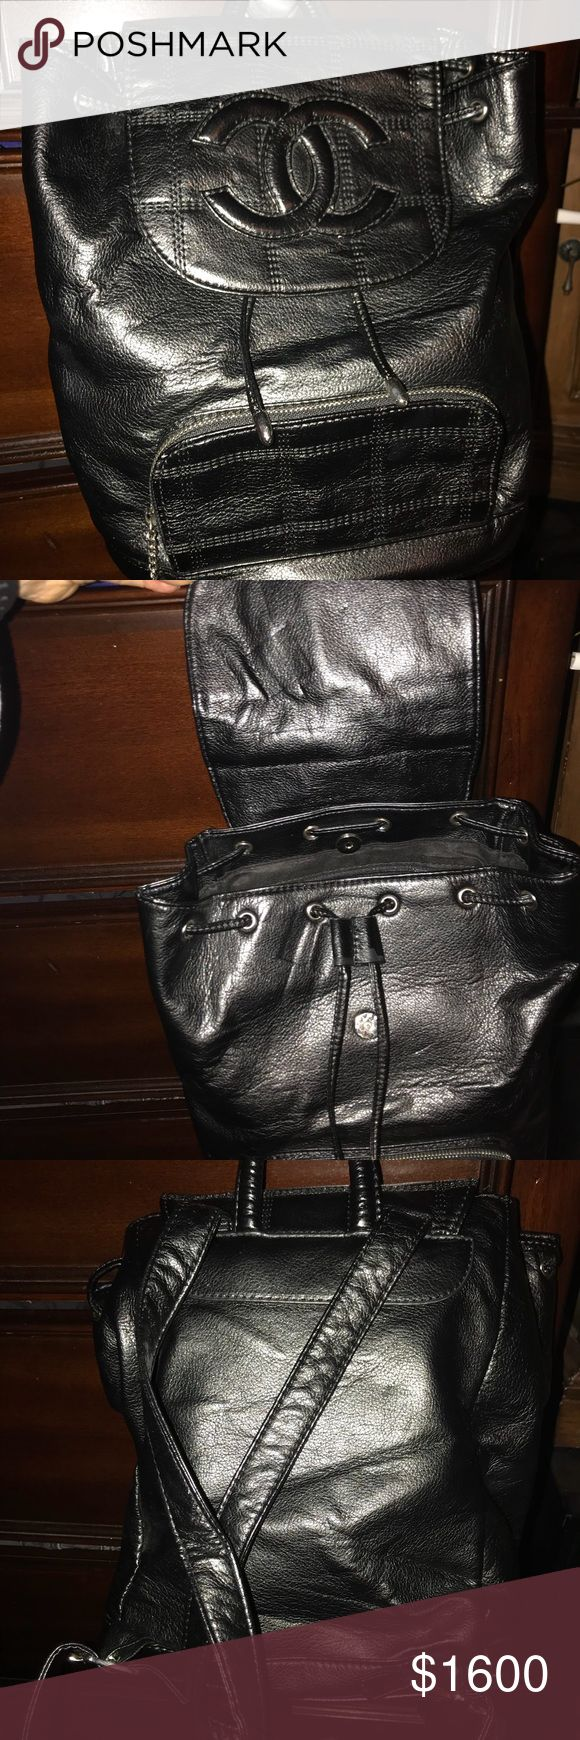 Medium size Authentic Chanel bag pack. A beautiful black authentic Chanel bag pack. Never used and comes with original documents and white bag. CHANEL Bags Backpacks